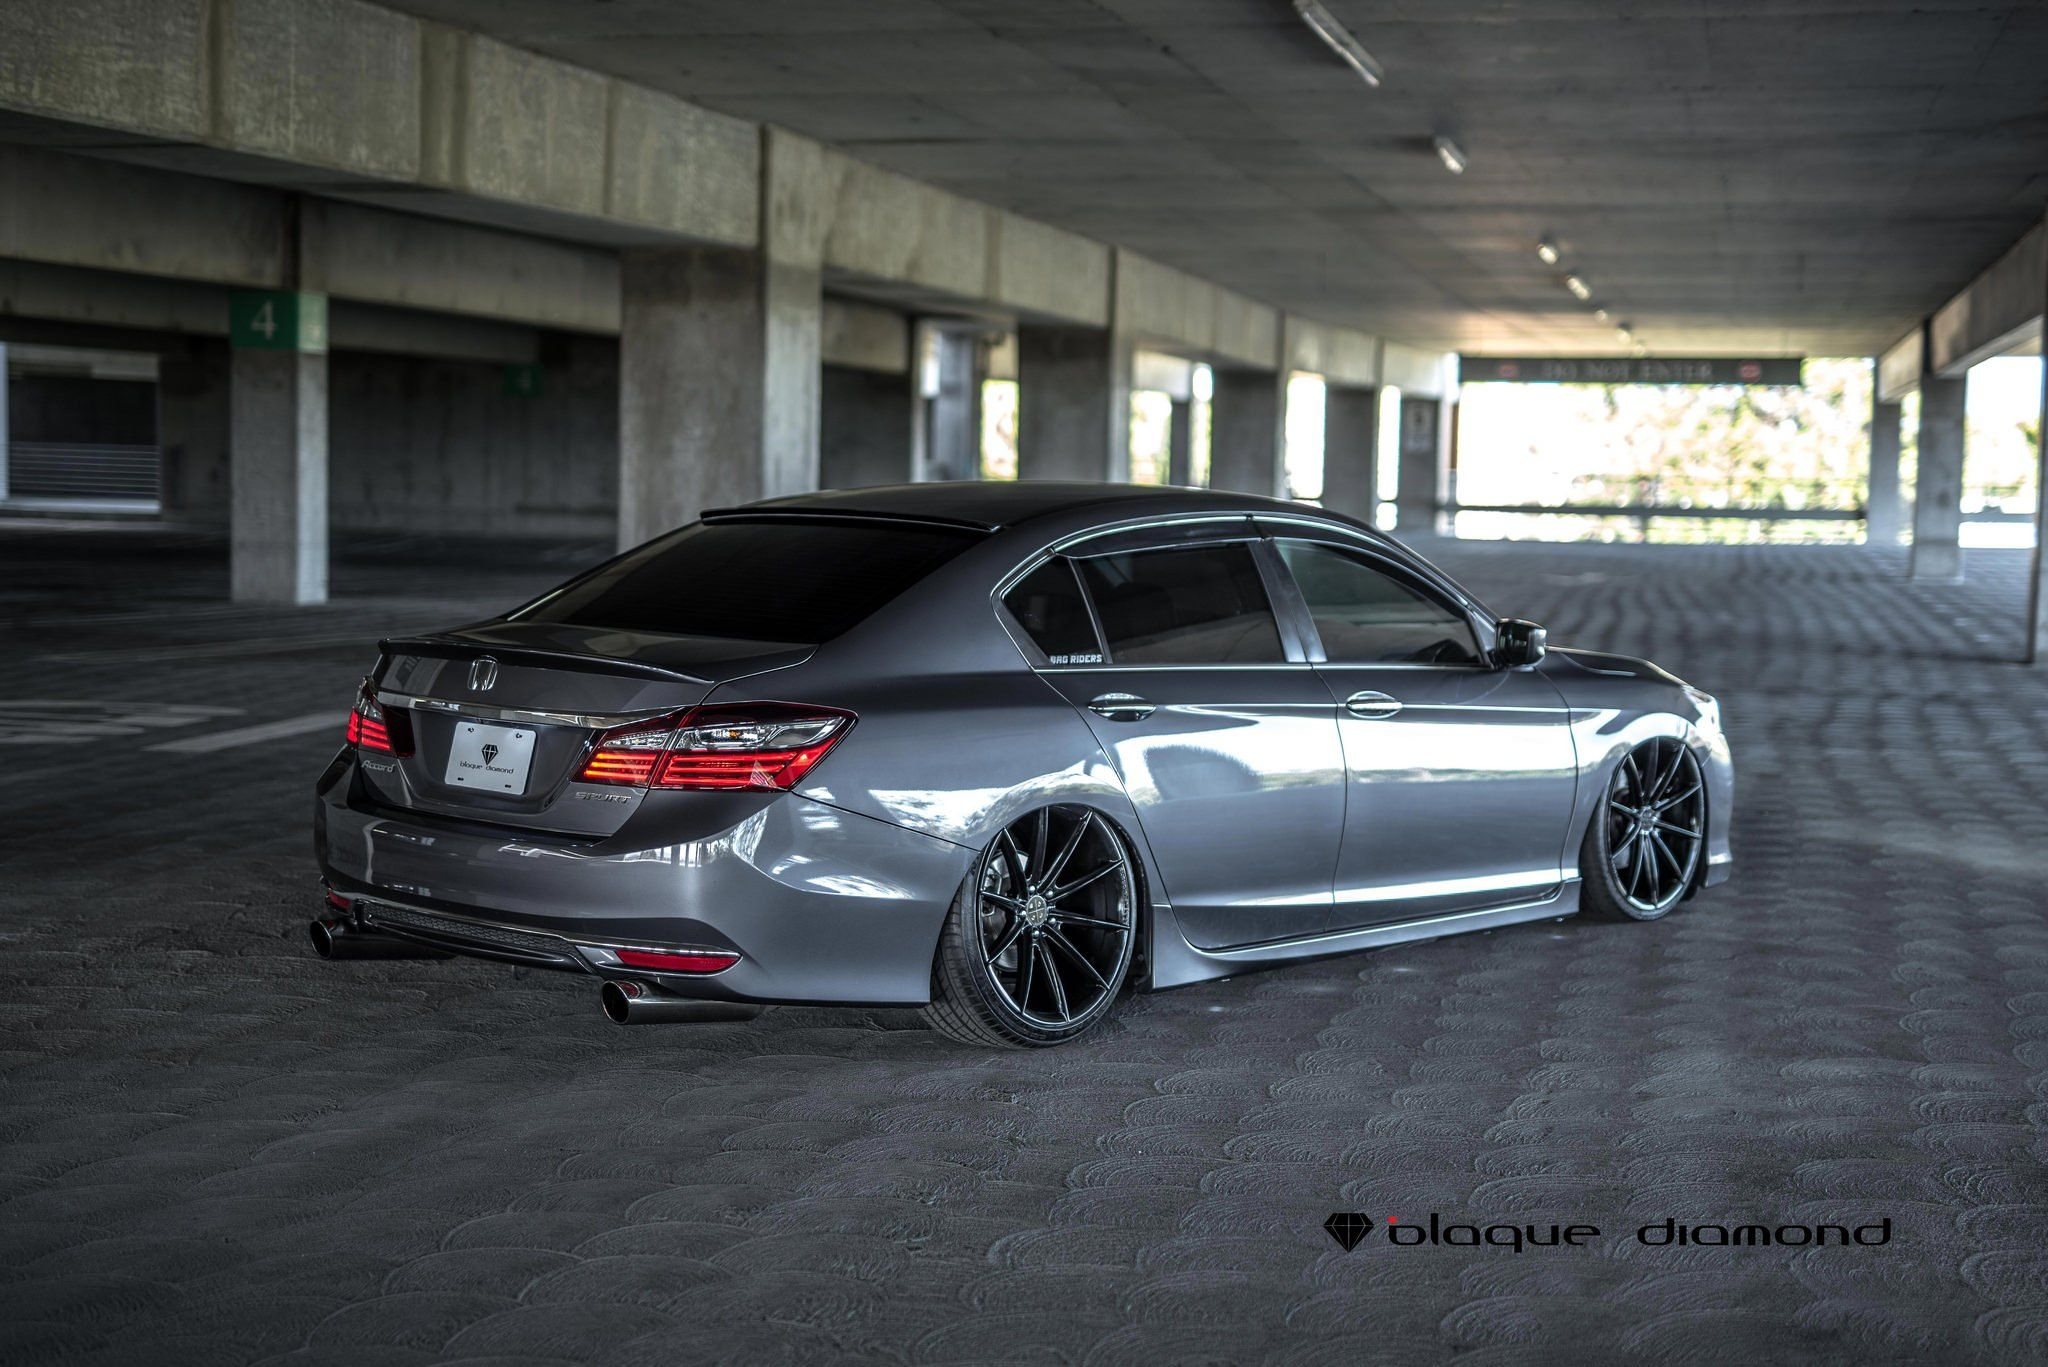 Stanced Honda Accord With Air Suspension And Black Diamond Bd23 Rims Carid Com Gallery In 2020 Honda Accord Honda Accord Sport 2013 Honda Accord